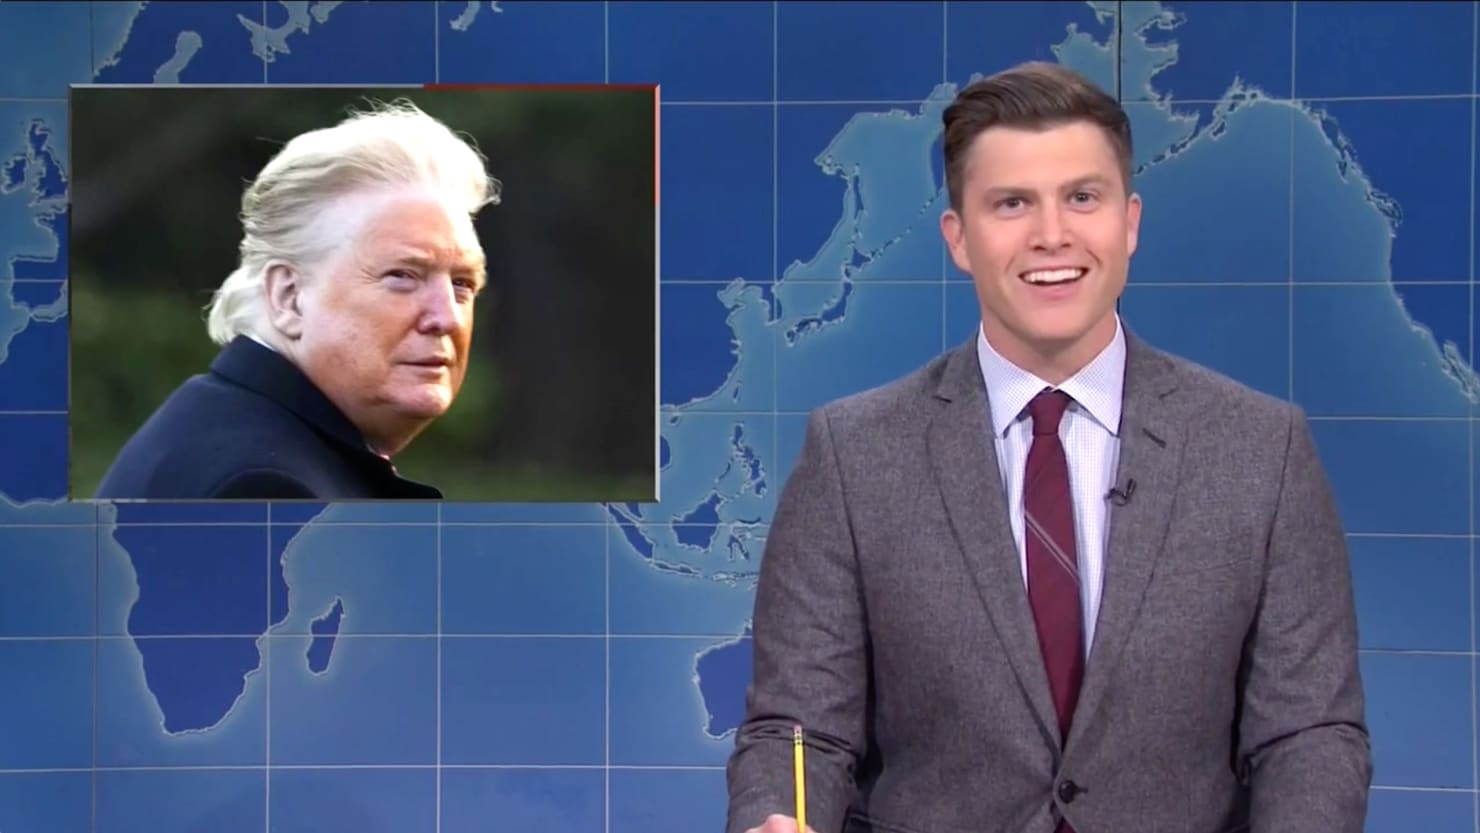 SNL Brutally Mocks Trump's Orange Face Tan Line Photo